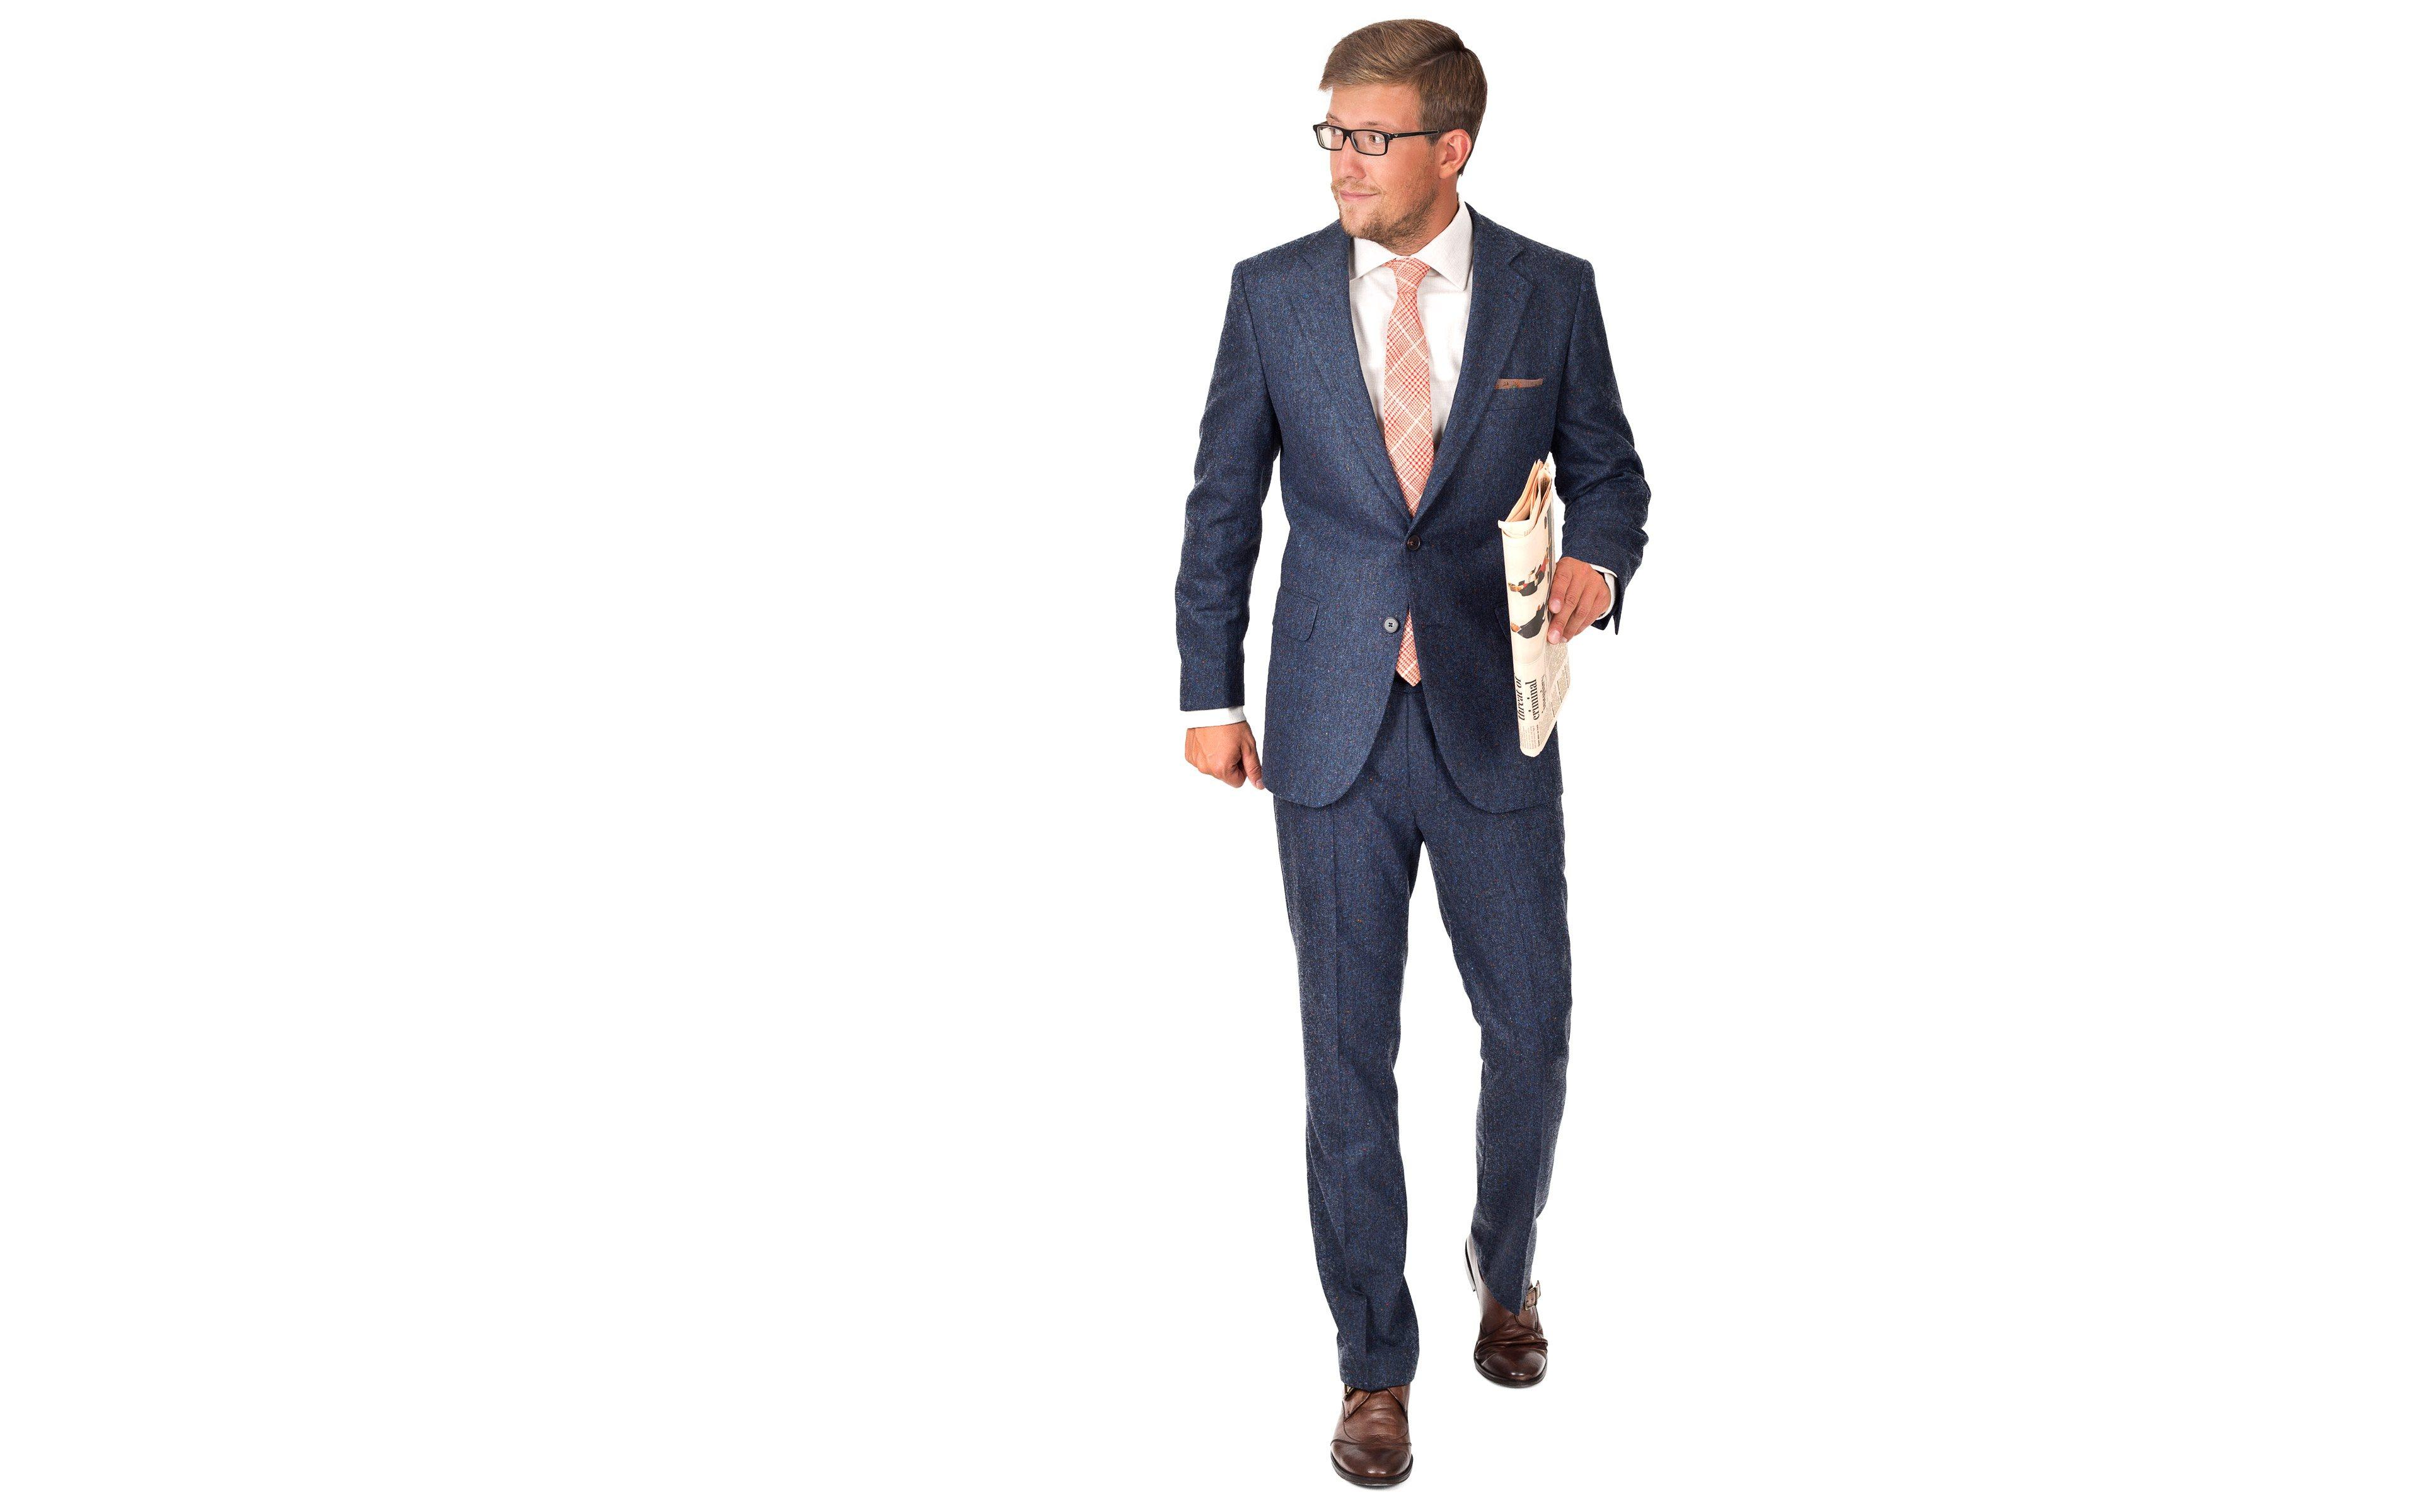 Suit in Blue Donegal Tweed